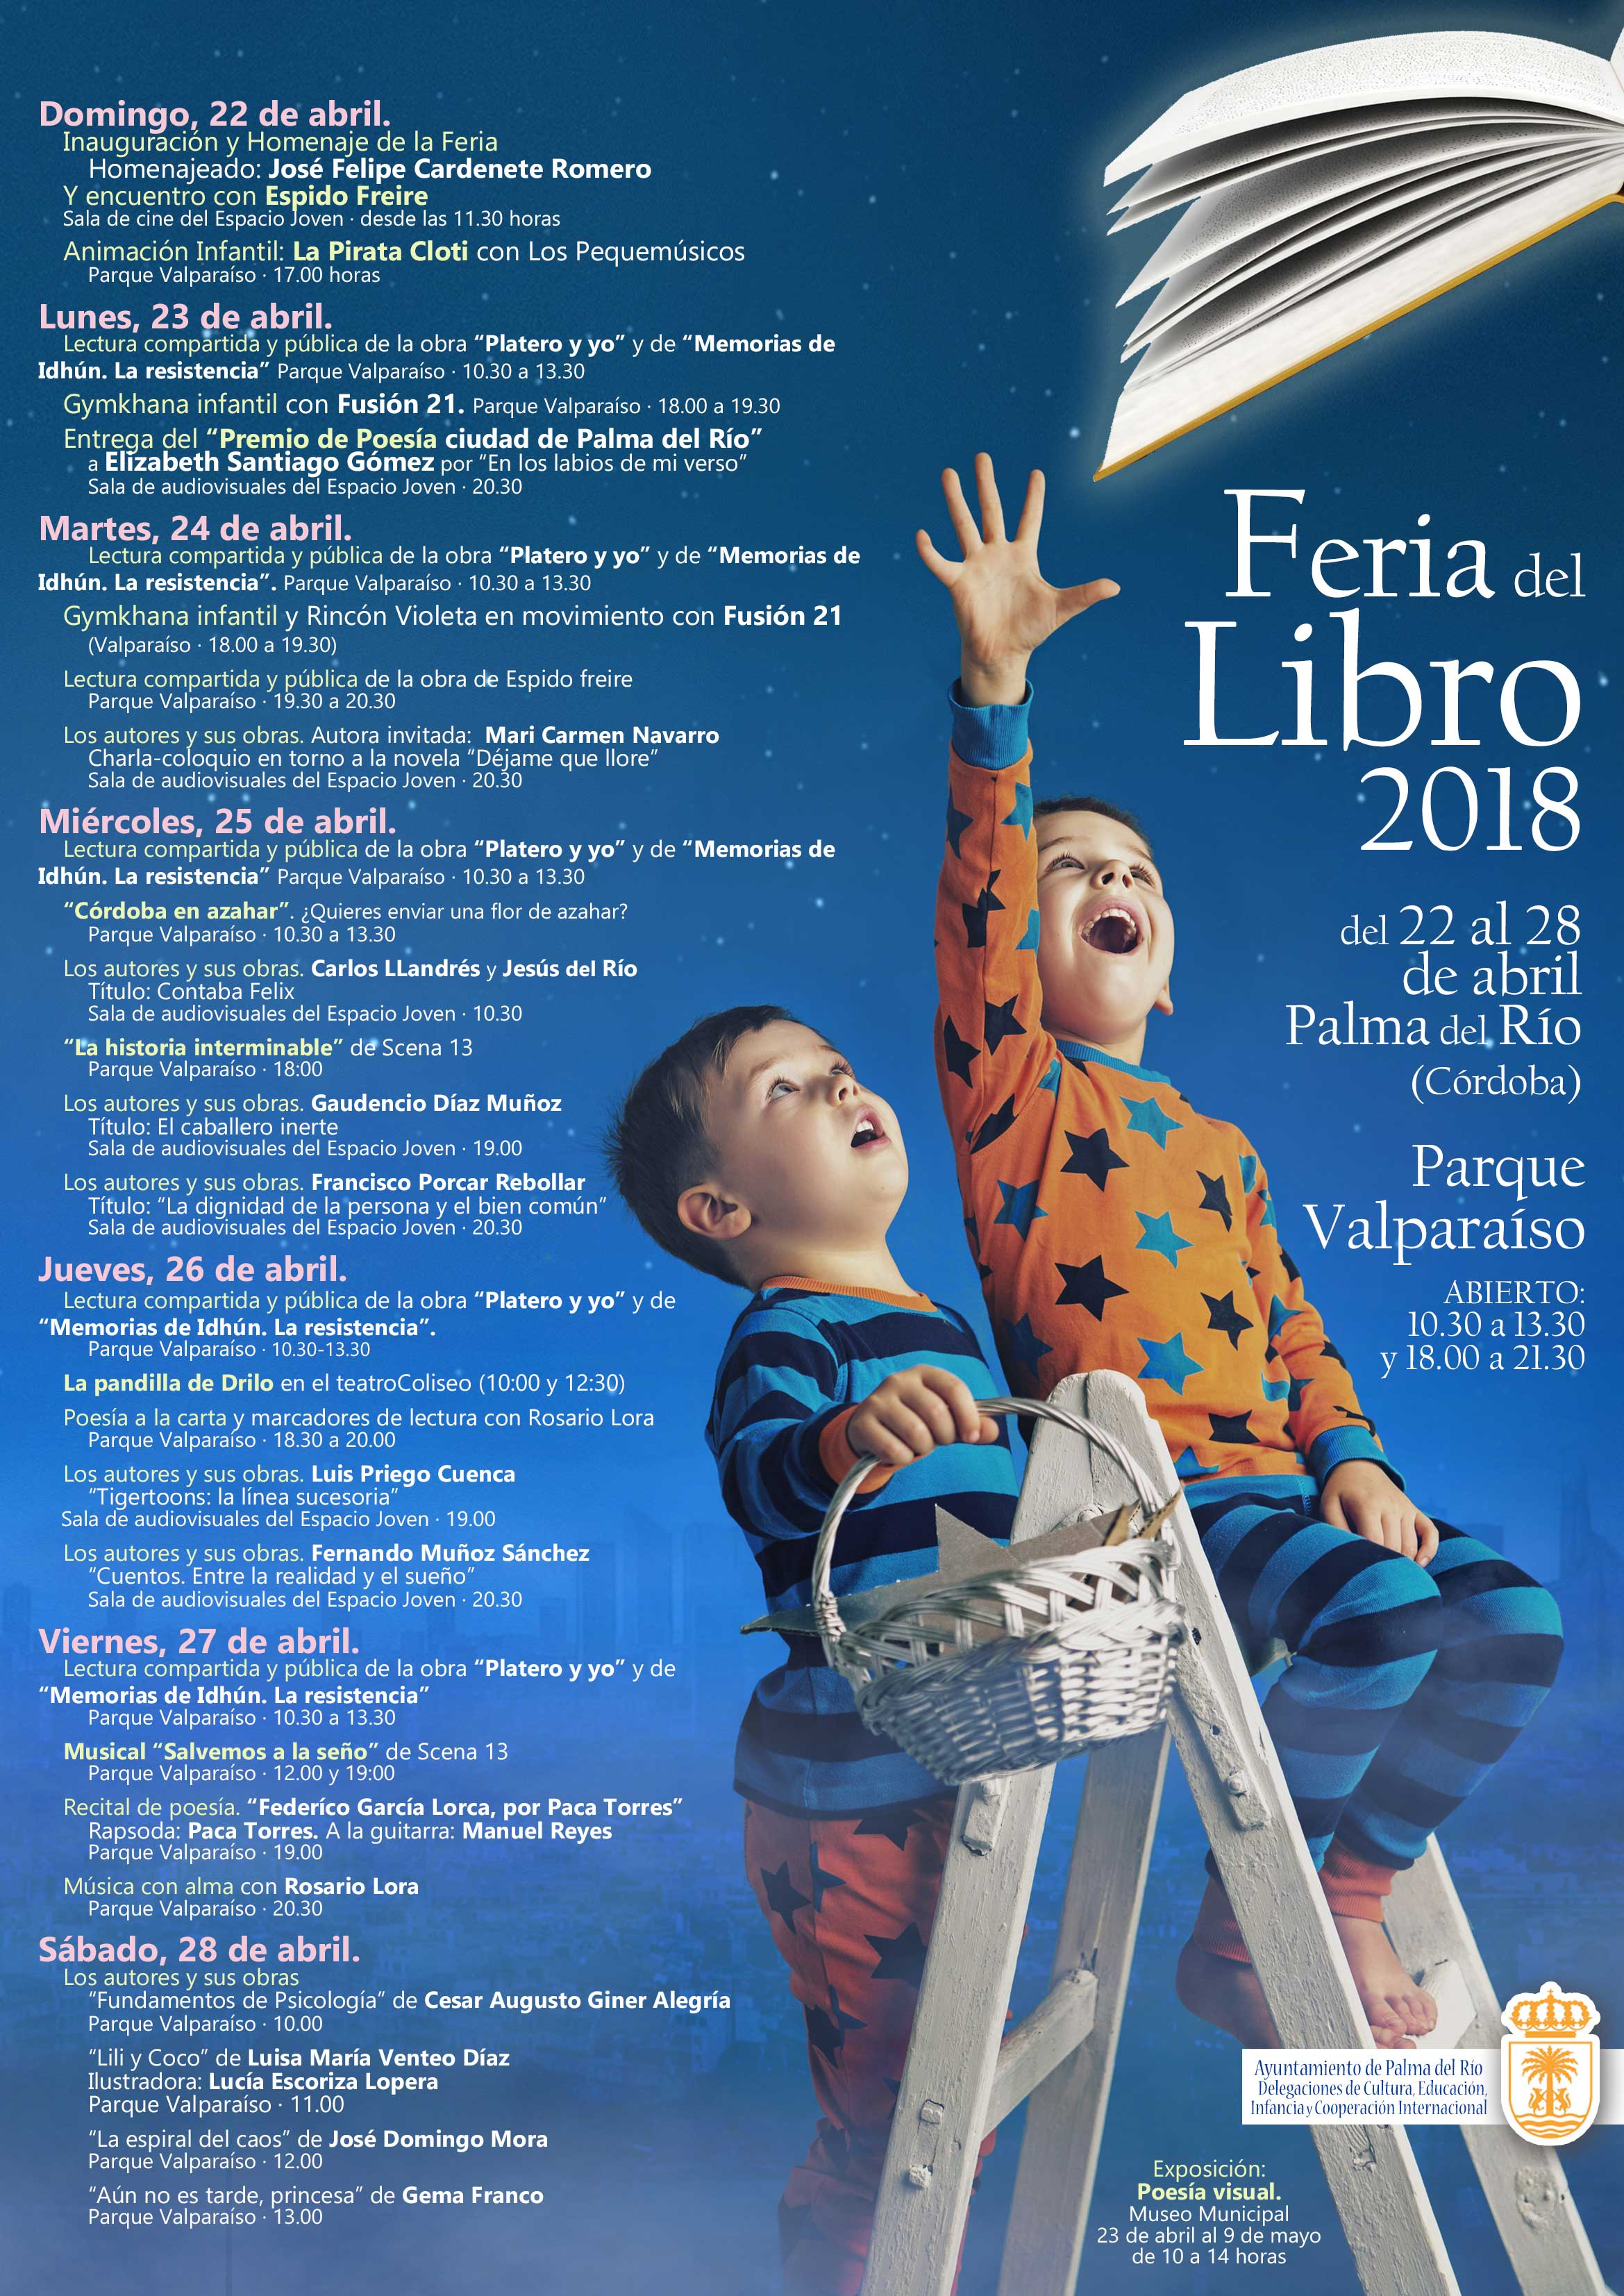 https://www.palmadelrio.es/sites/default/files/web-cartel-feria-libro-2018-programa.jpg